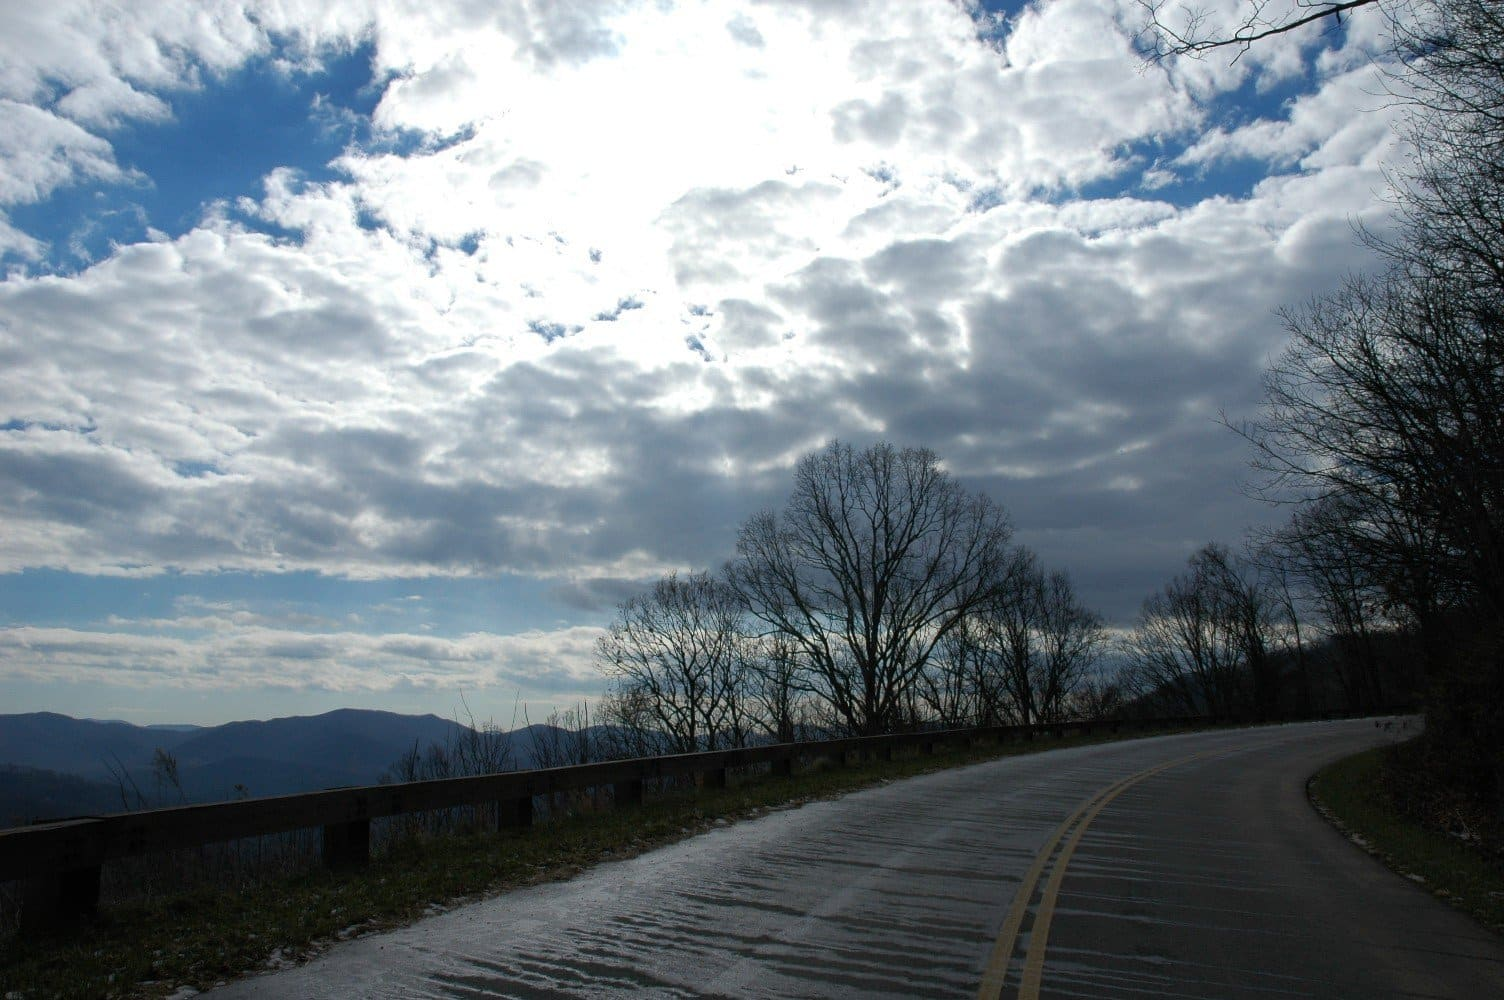 View from Blue Ridge Parkway of distant mountains amidst blue skies and white clouds